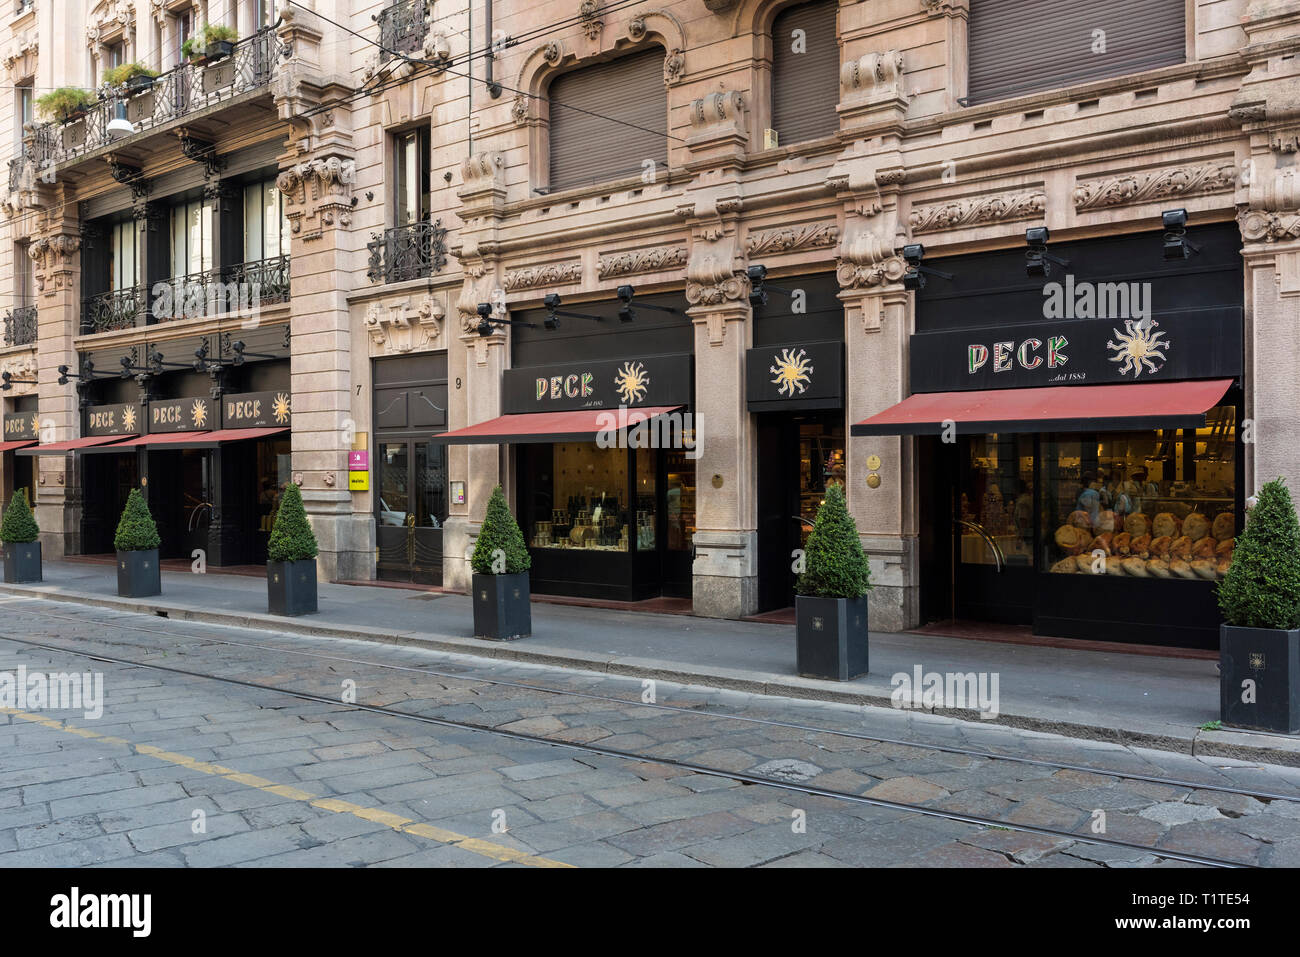 Milan. Italy. Exterior of Peck, well known delicatessen on Via Spadari 9. - Stock Image